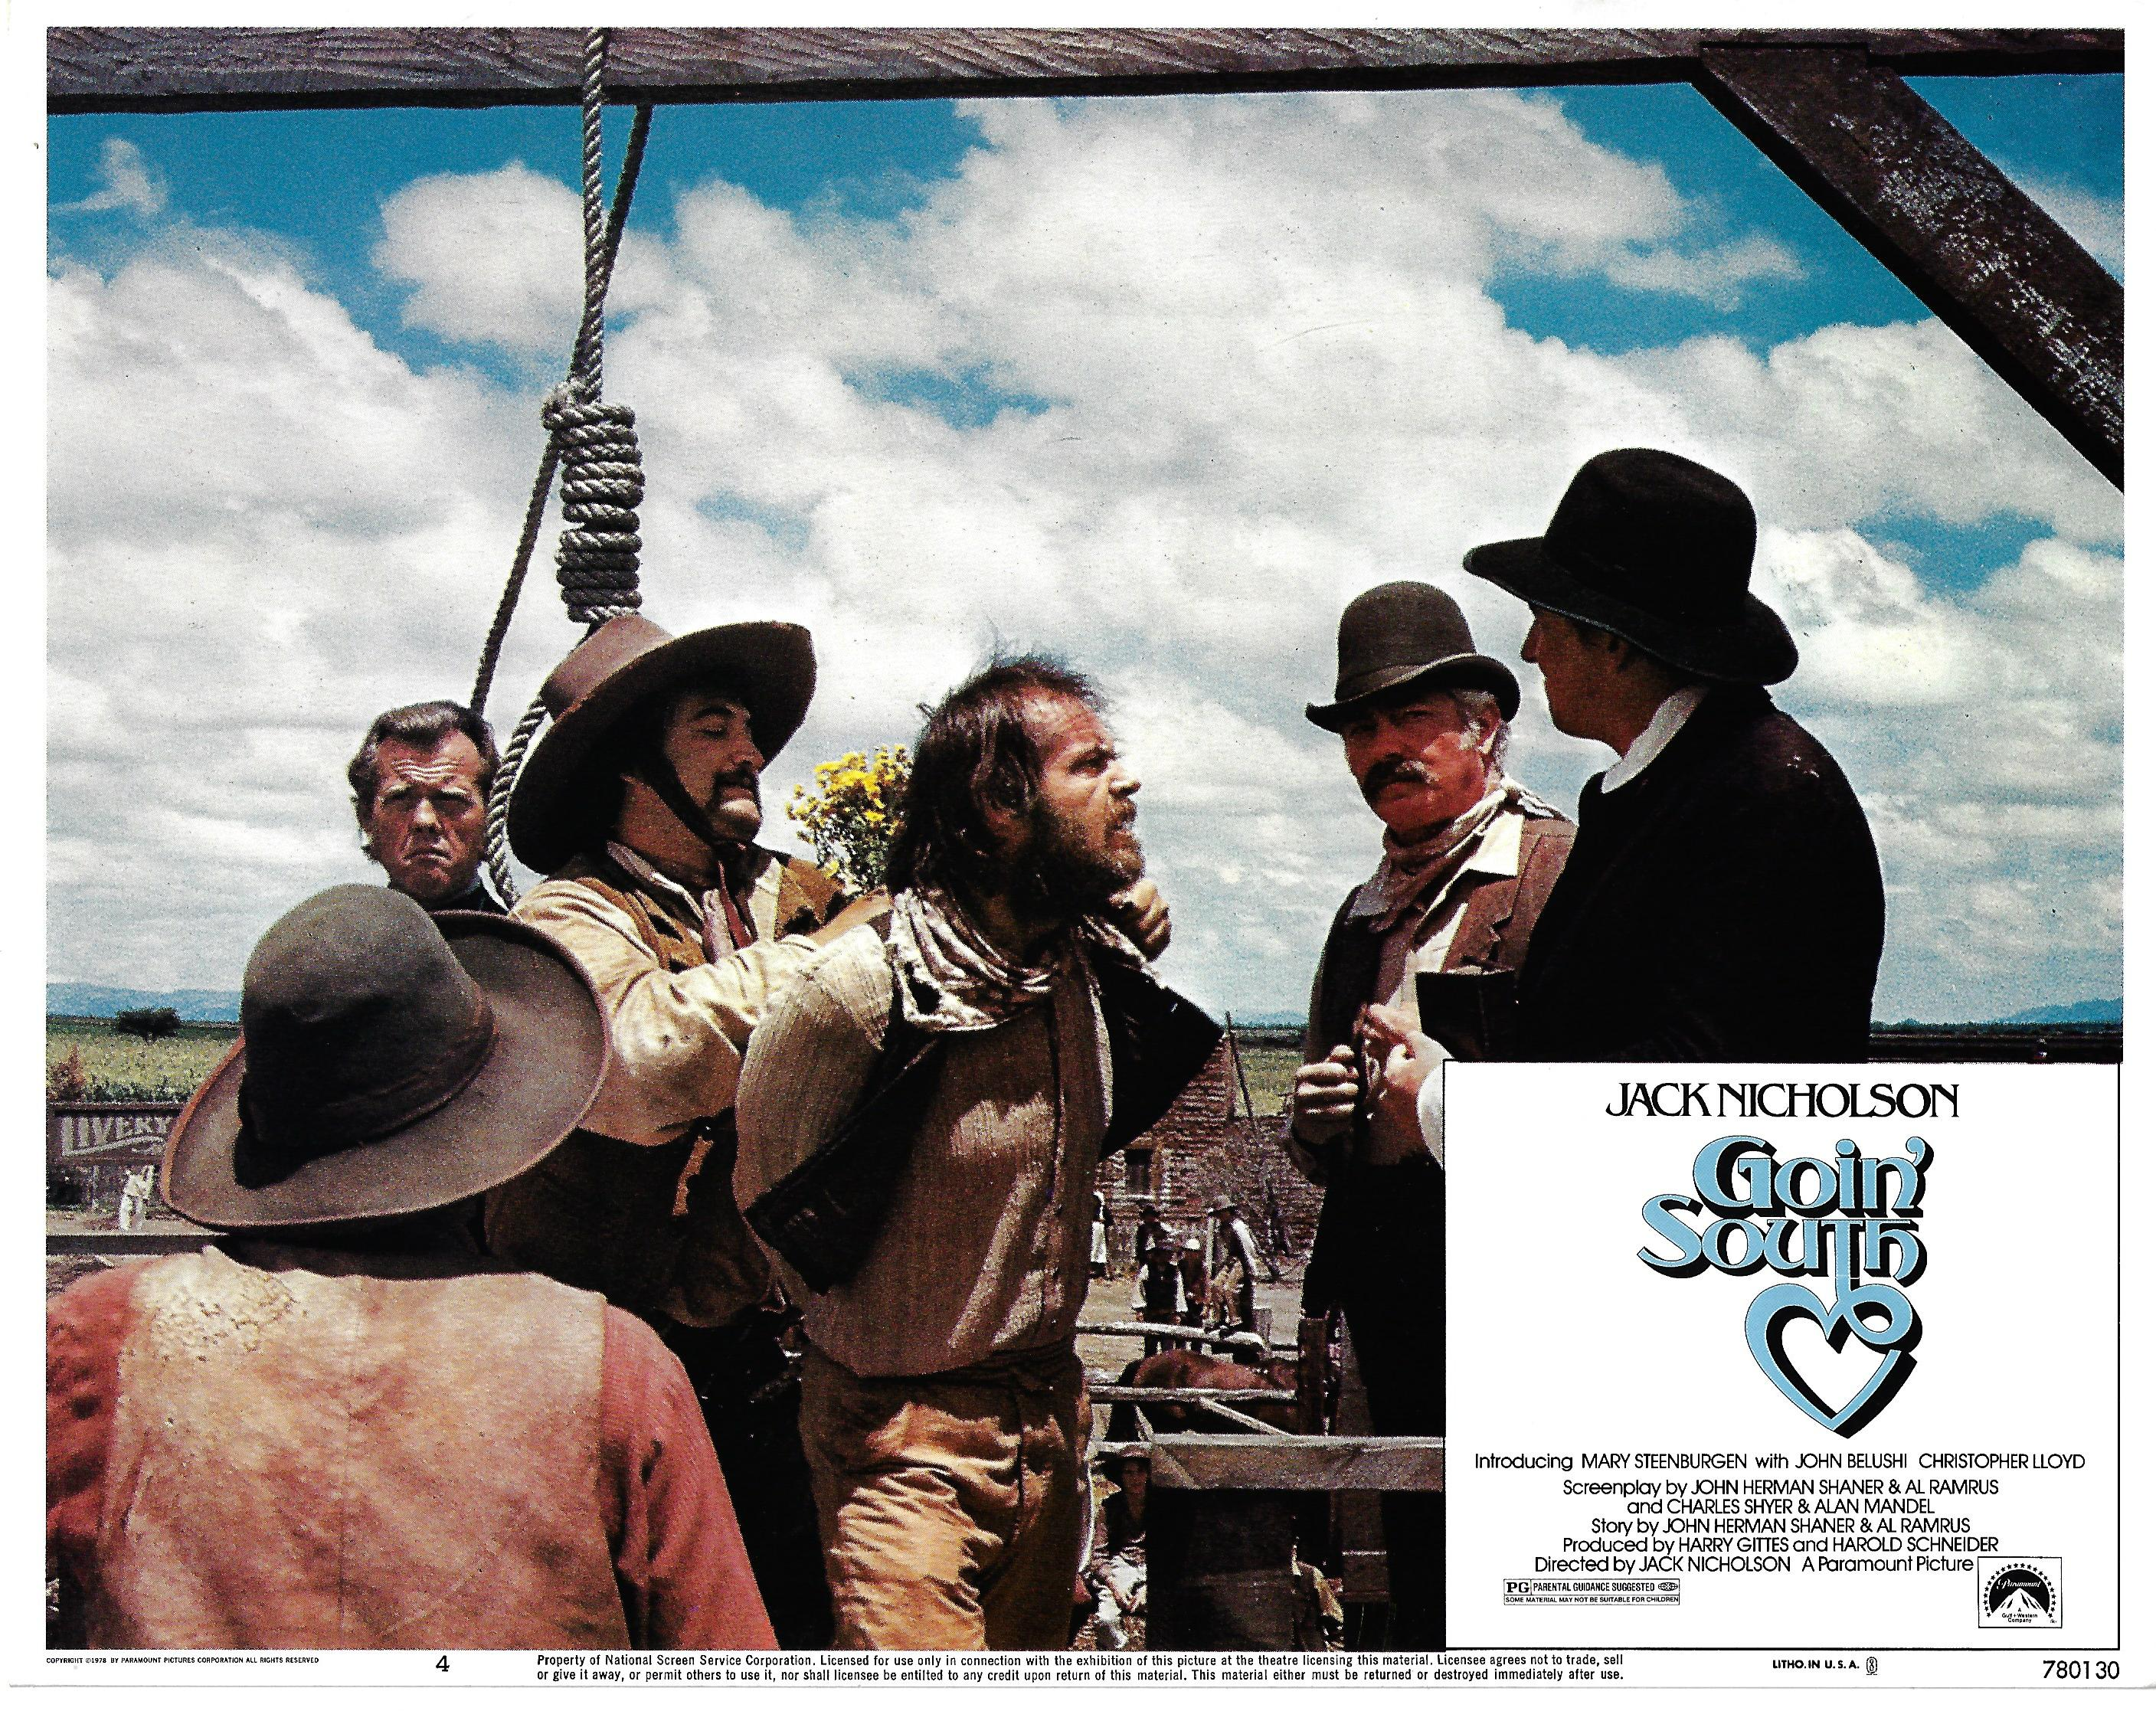 Going South , 1978, Jack Nicholson, Original Lobby Card #, 11x14